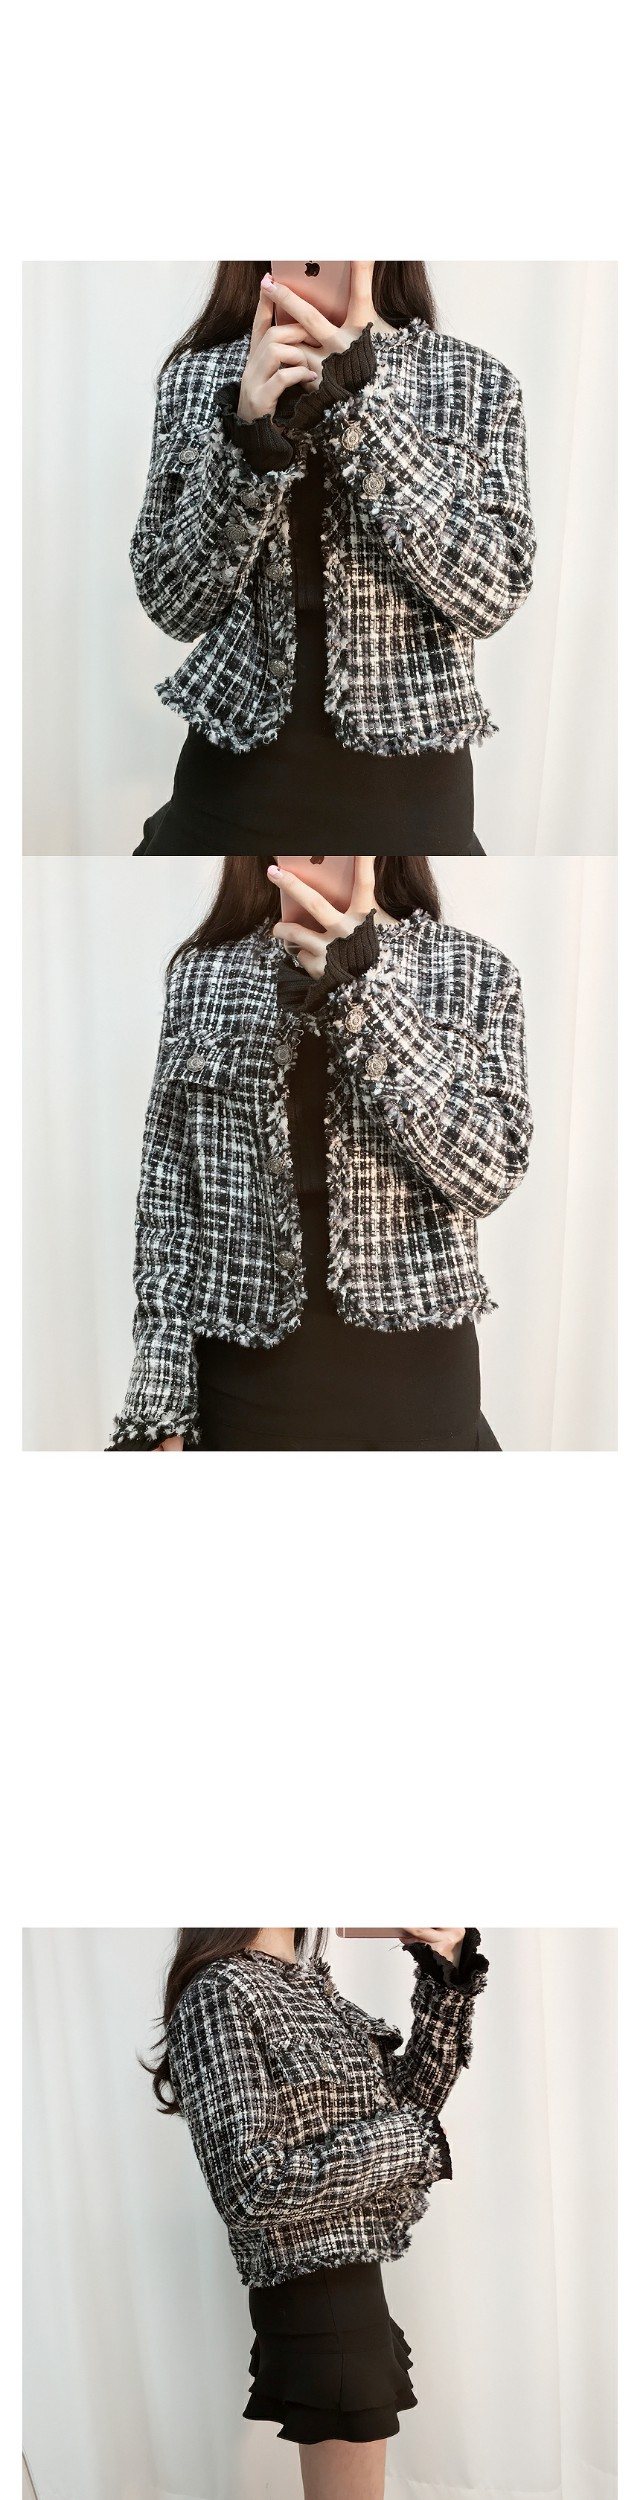 ♥ Blanc Tweed Jacket